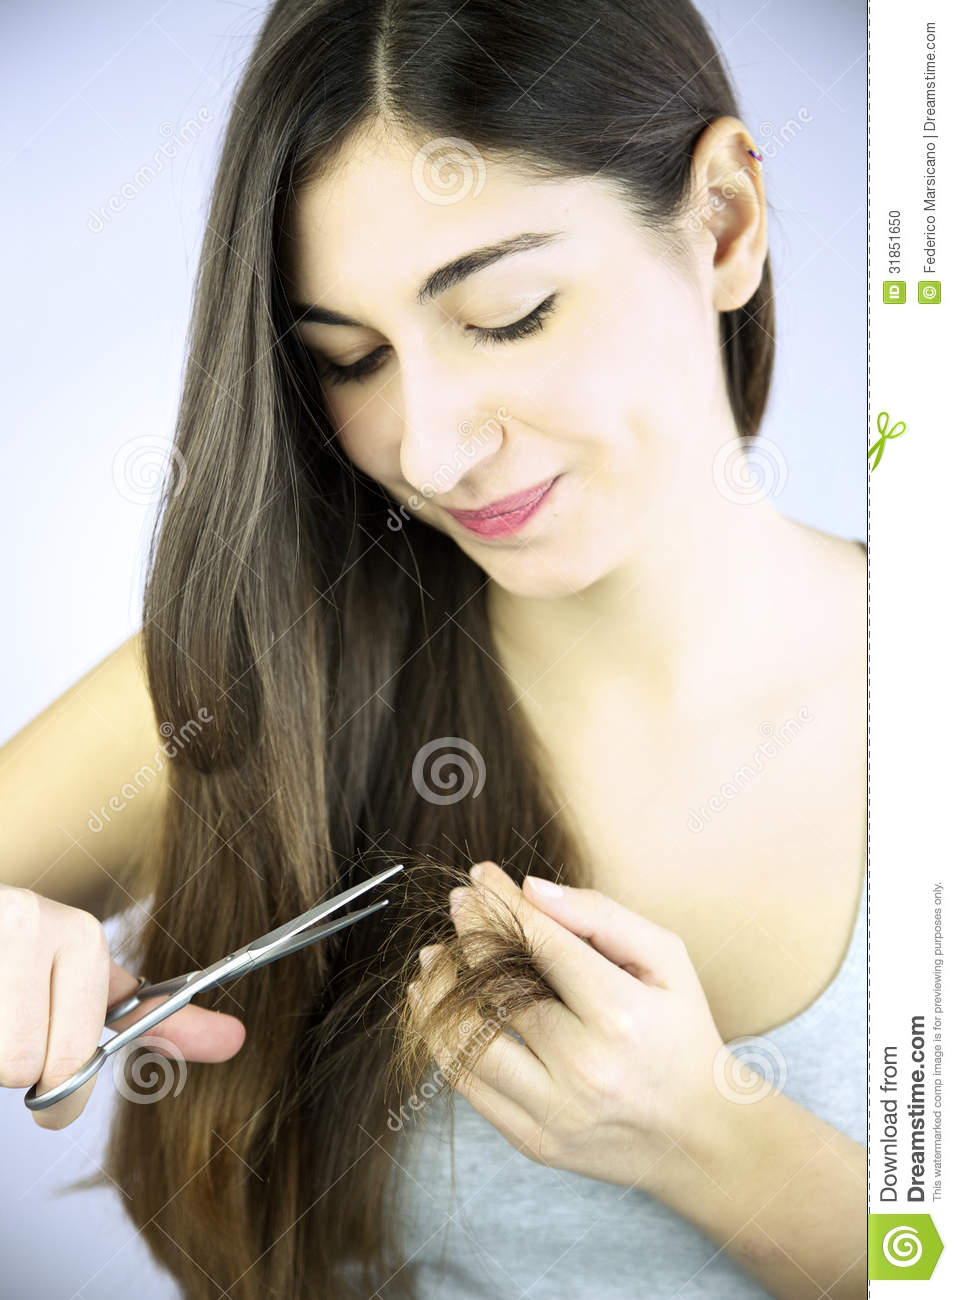 Beautiful Girl Cutting Split Ends Of Long Hair Stock Photo